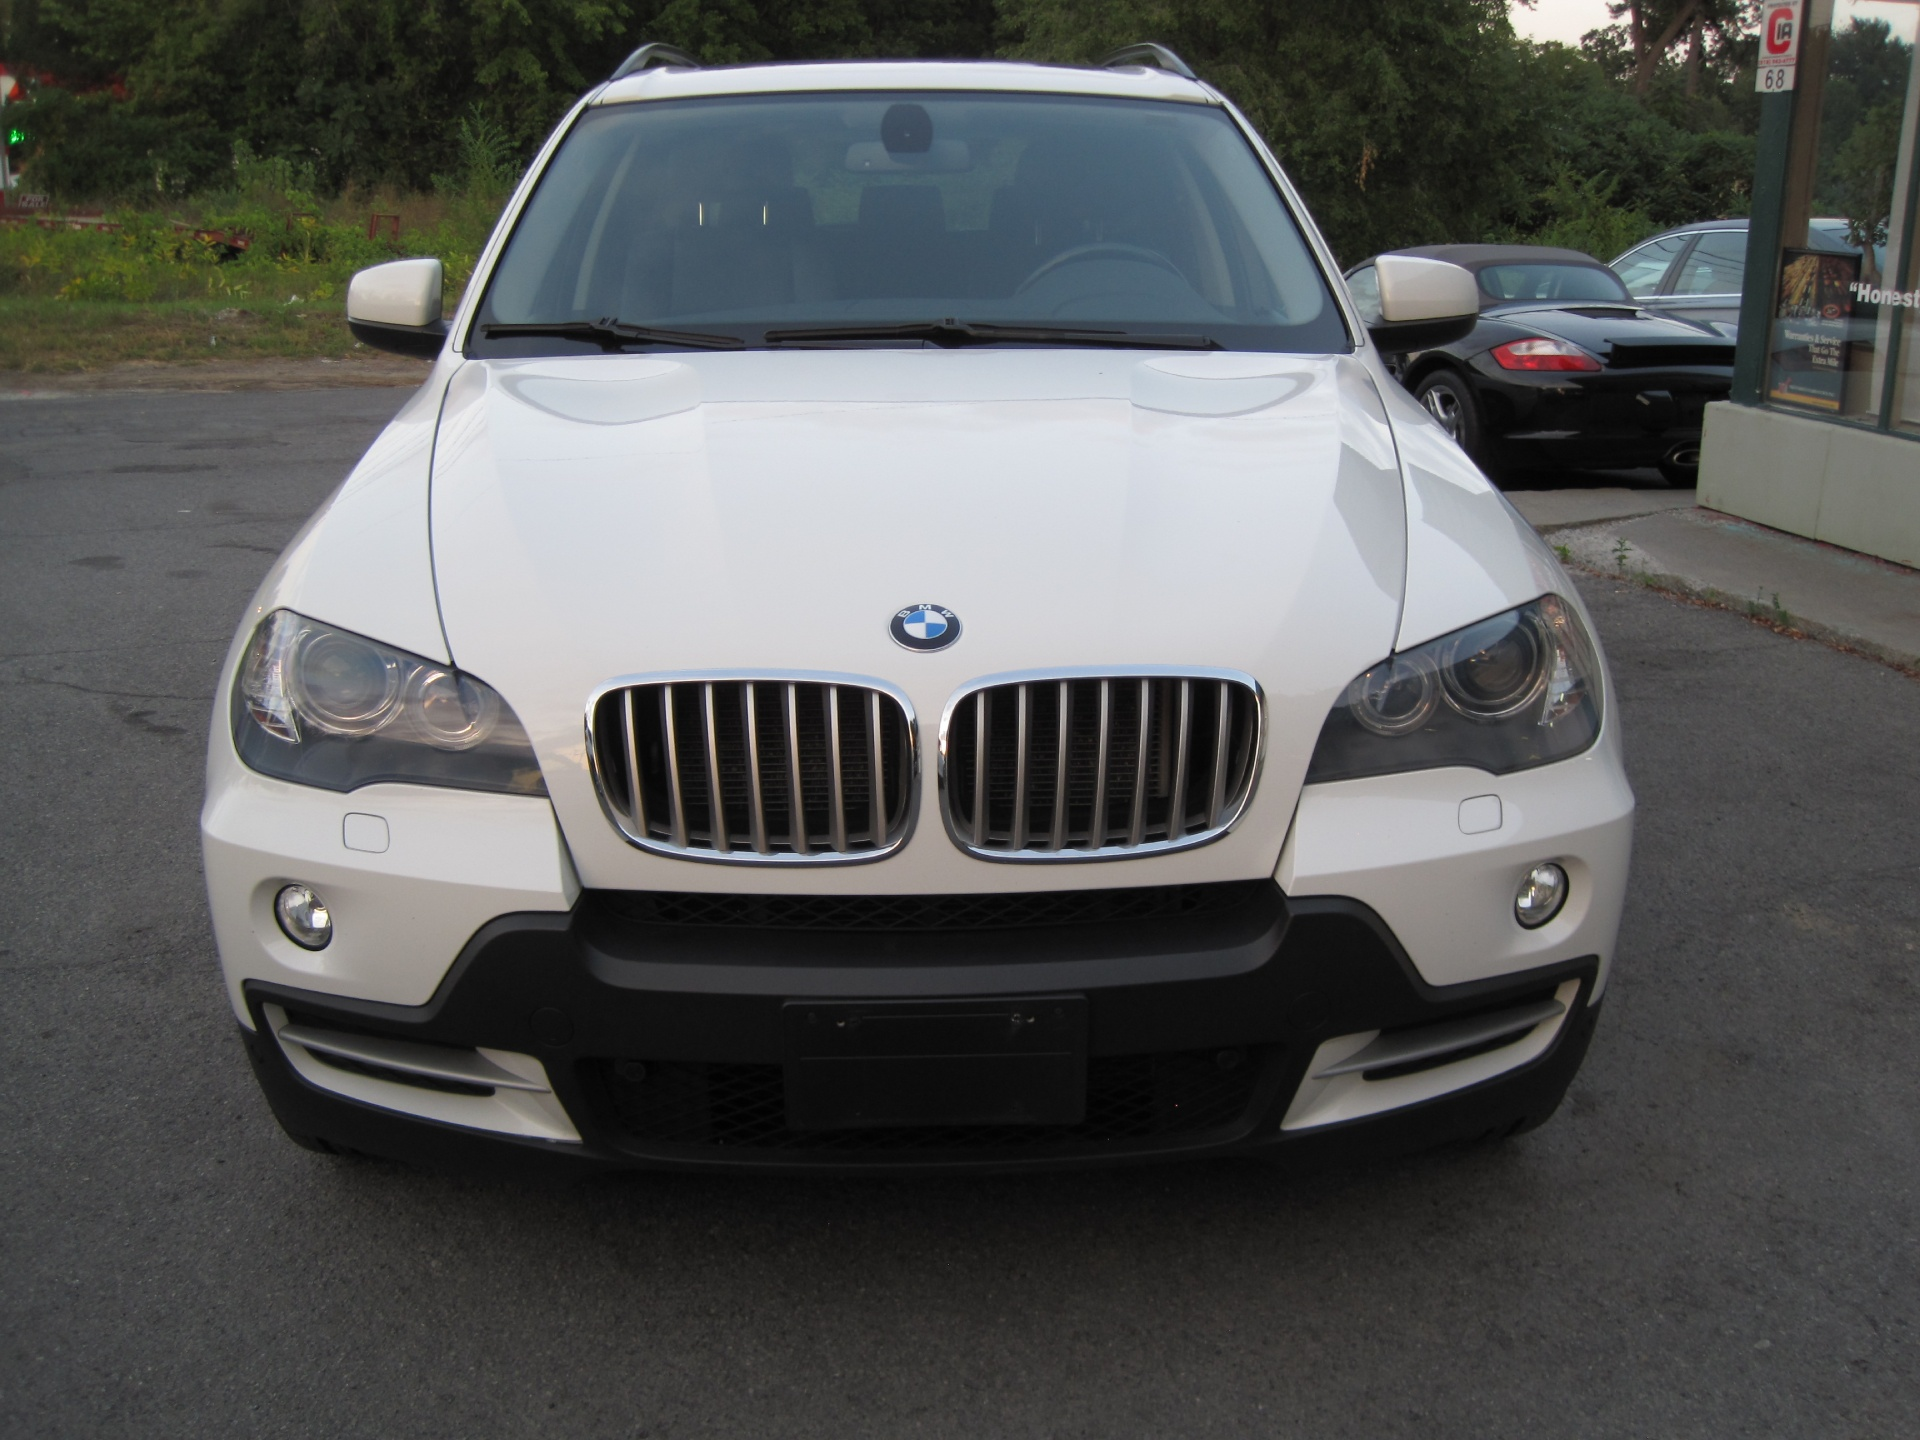 2009 bmw x5 xdrive30i very clean loaded tech premium prem sound cold wthr pkgs stock 15122 for. Black Bedroom Furniture Sets. Home Design Ideas